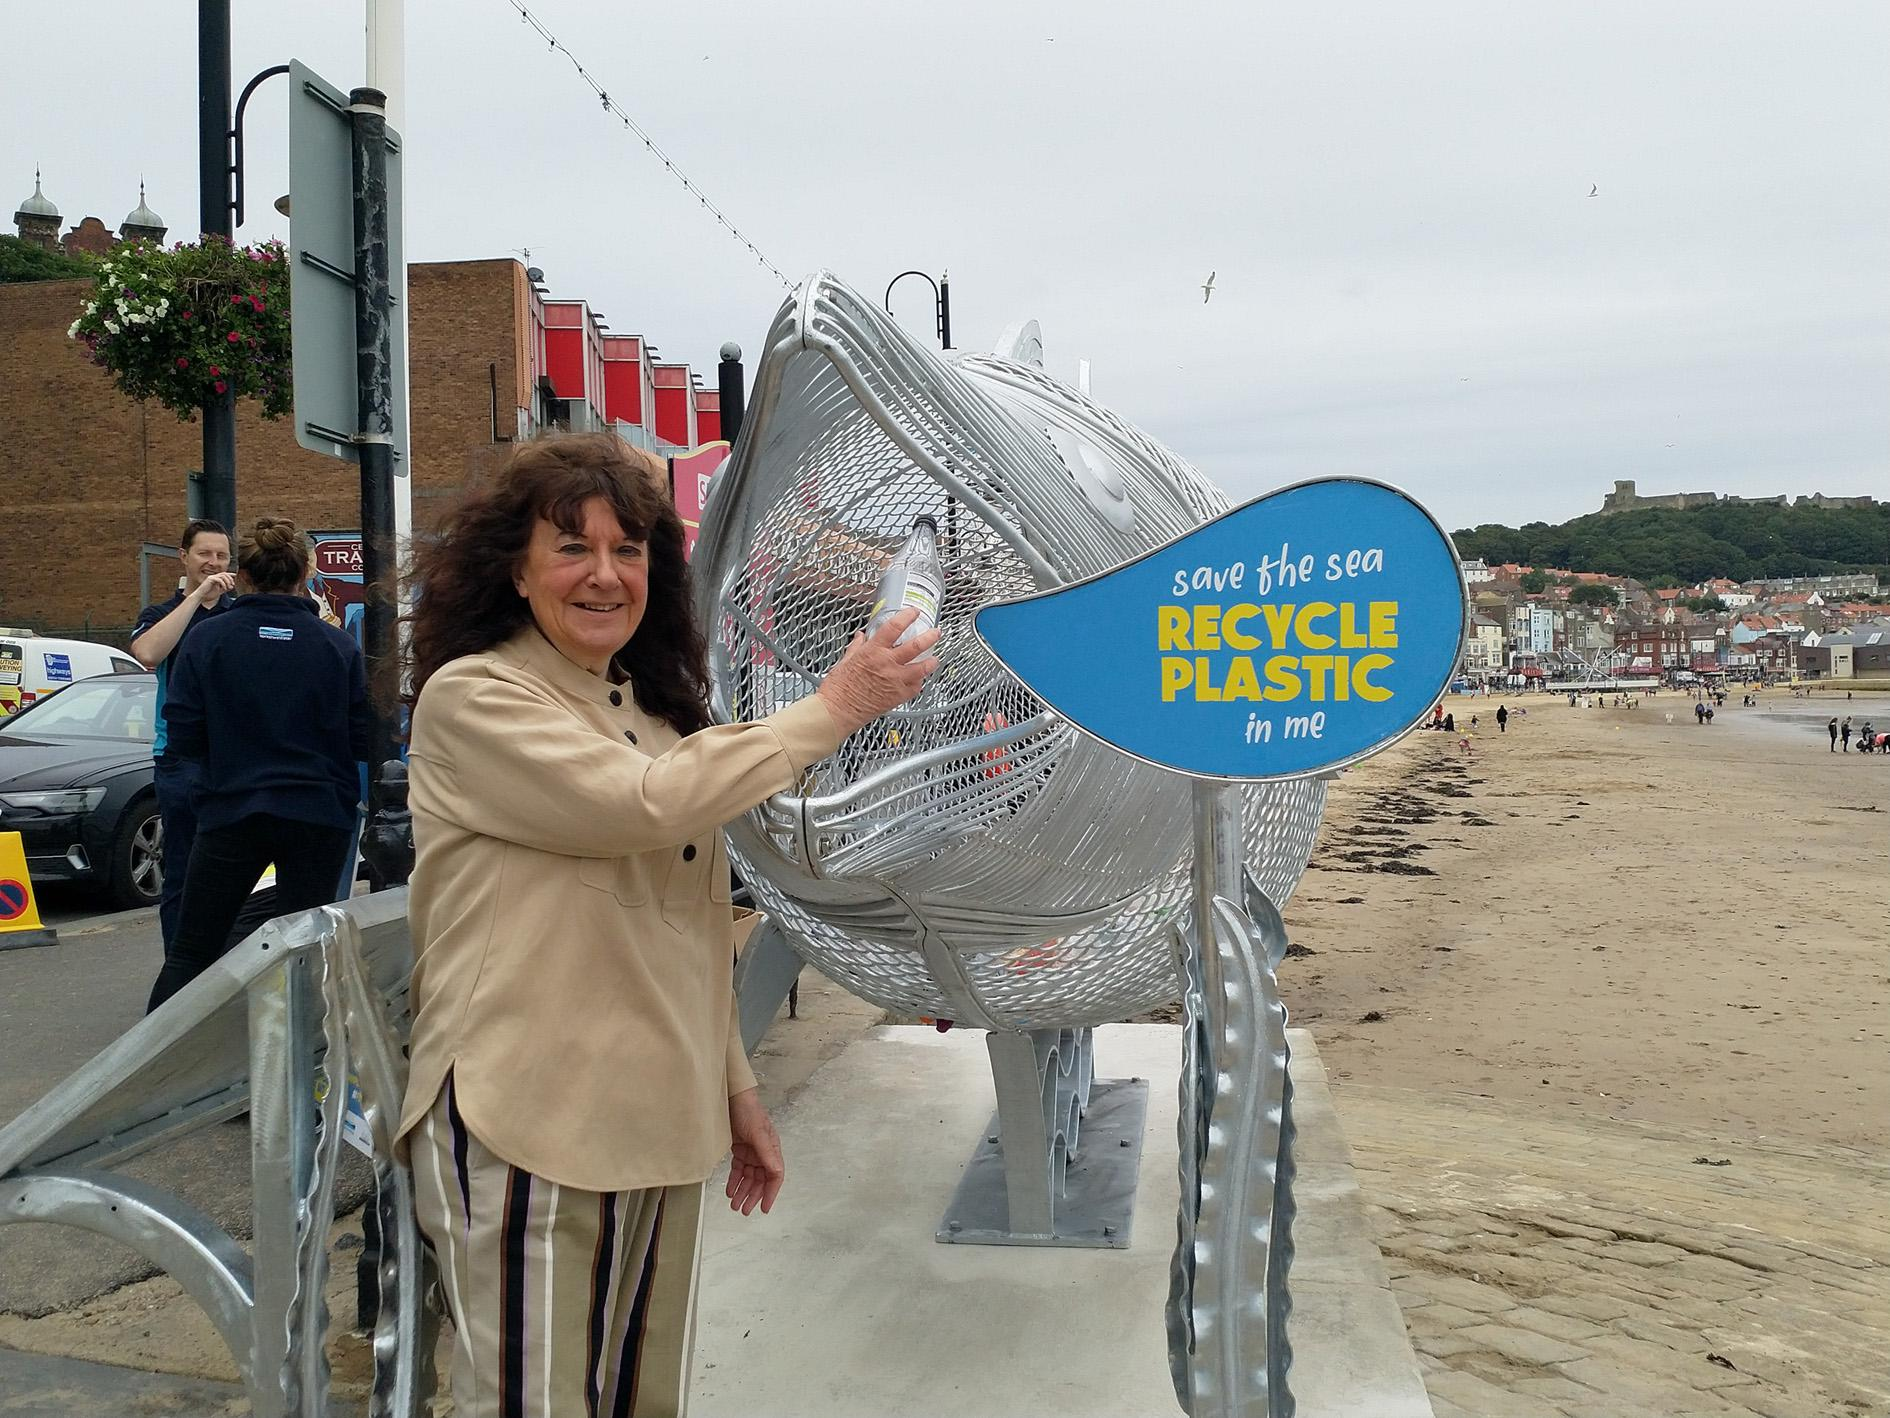 Picture of Cllr Janet Jefferson feeding the Fin the Fish sculpture with a single use plastic bottle